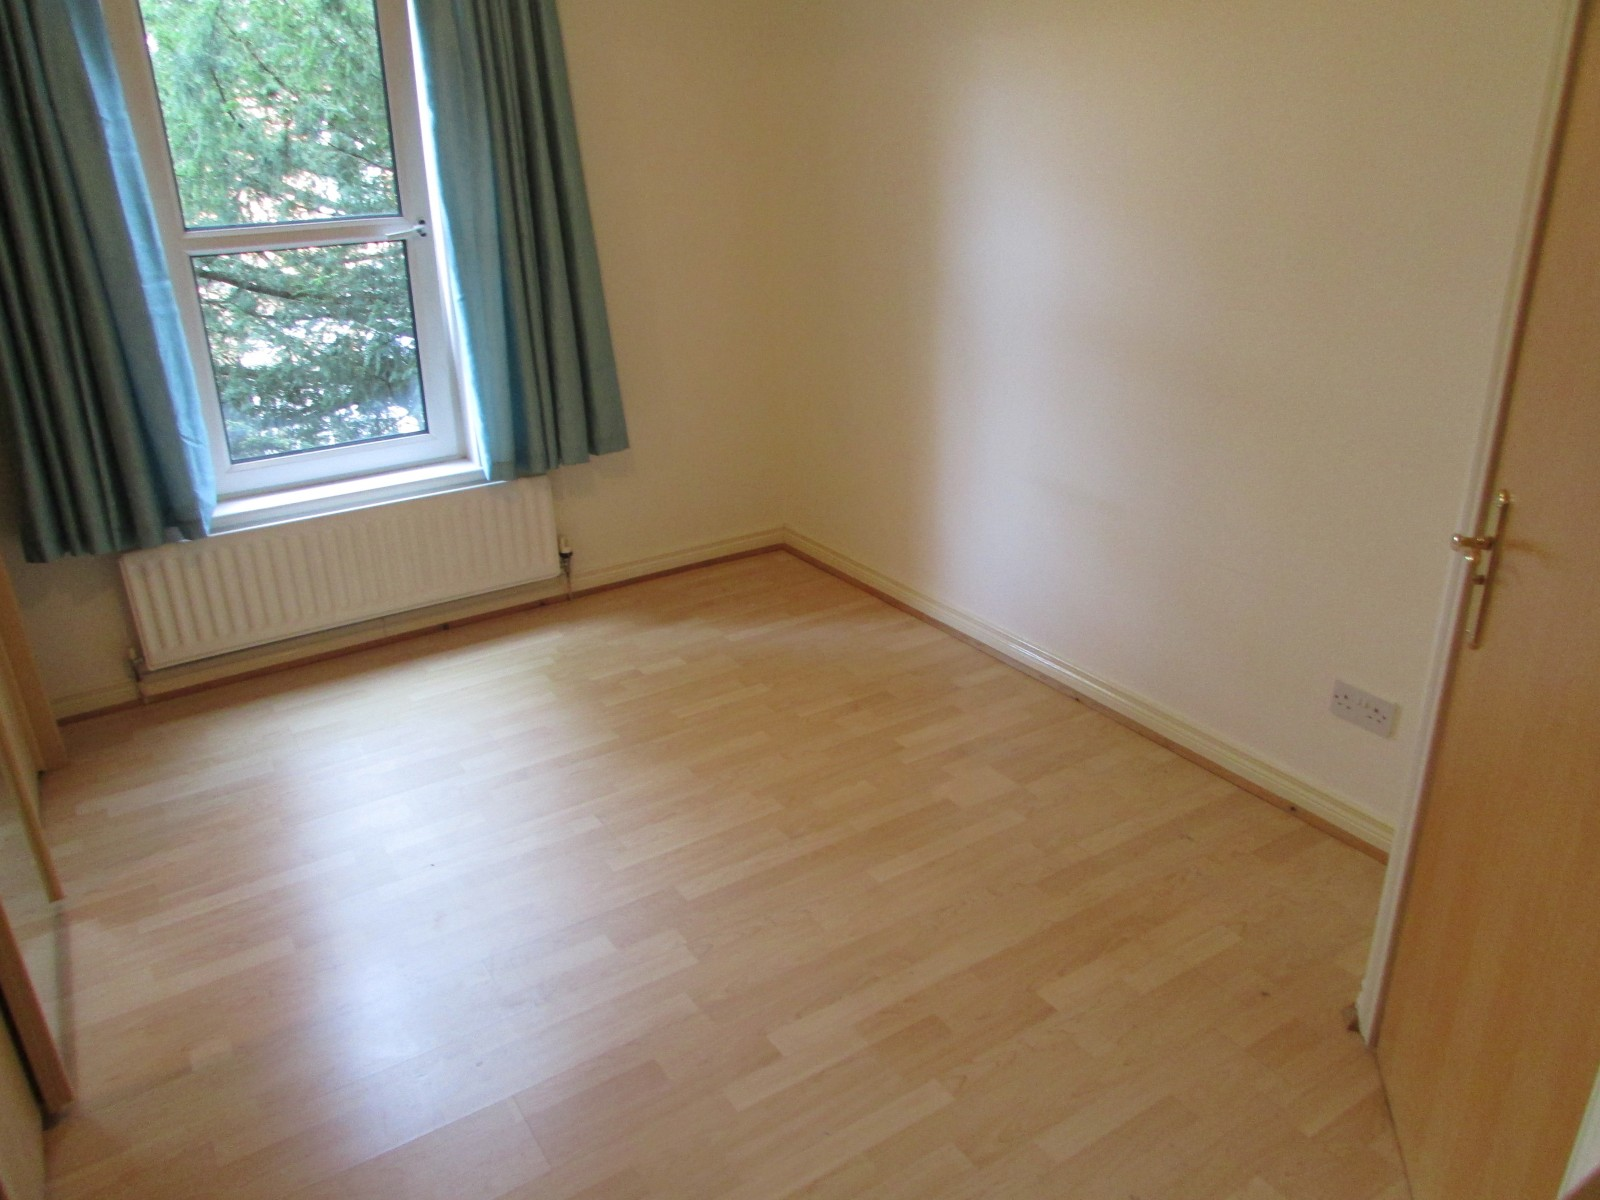 Flat 5, 48 Marlborough Park South, Malone Road, Belfast, BT9 6HS